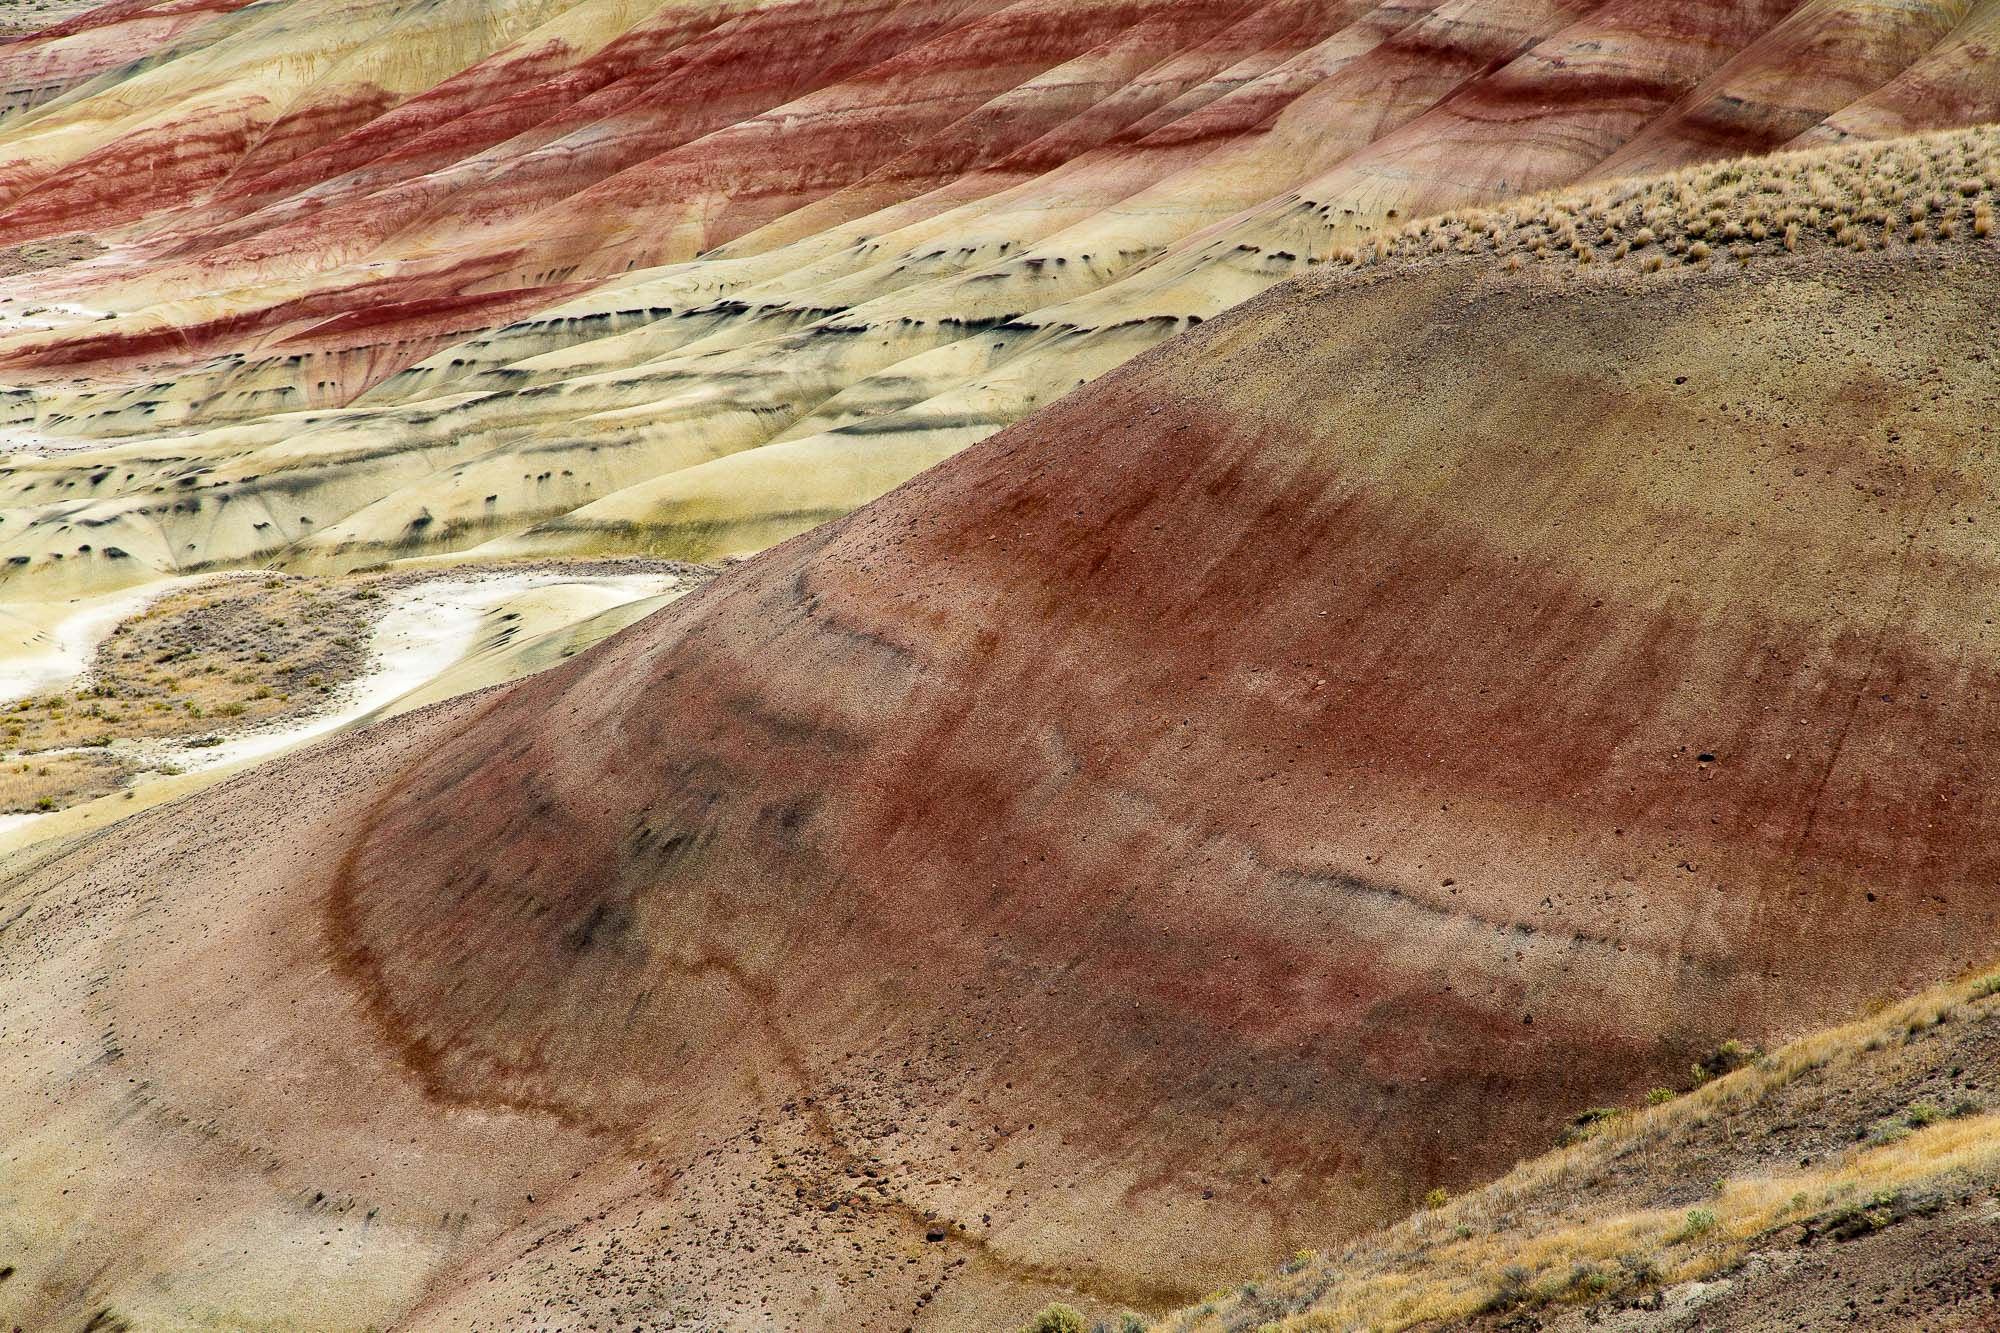 a photo of a desert landscape filled by yellow hills with wide red striations, thin black striations, and sparse scrub vegetation